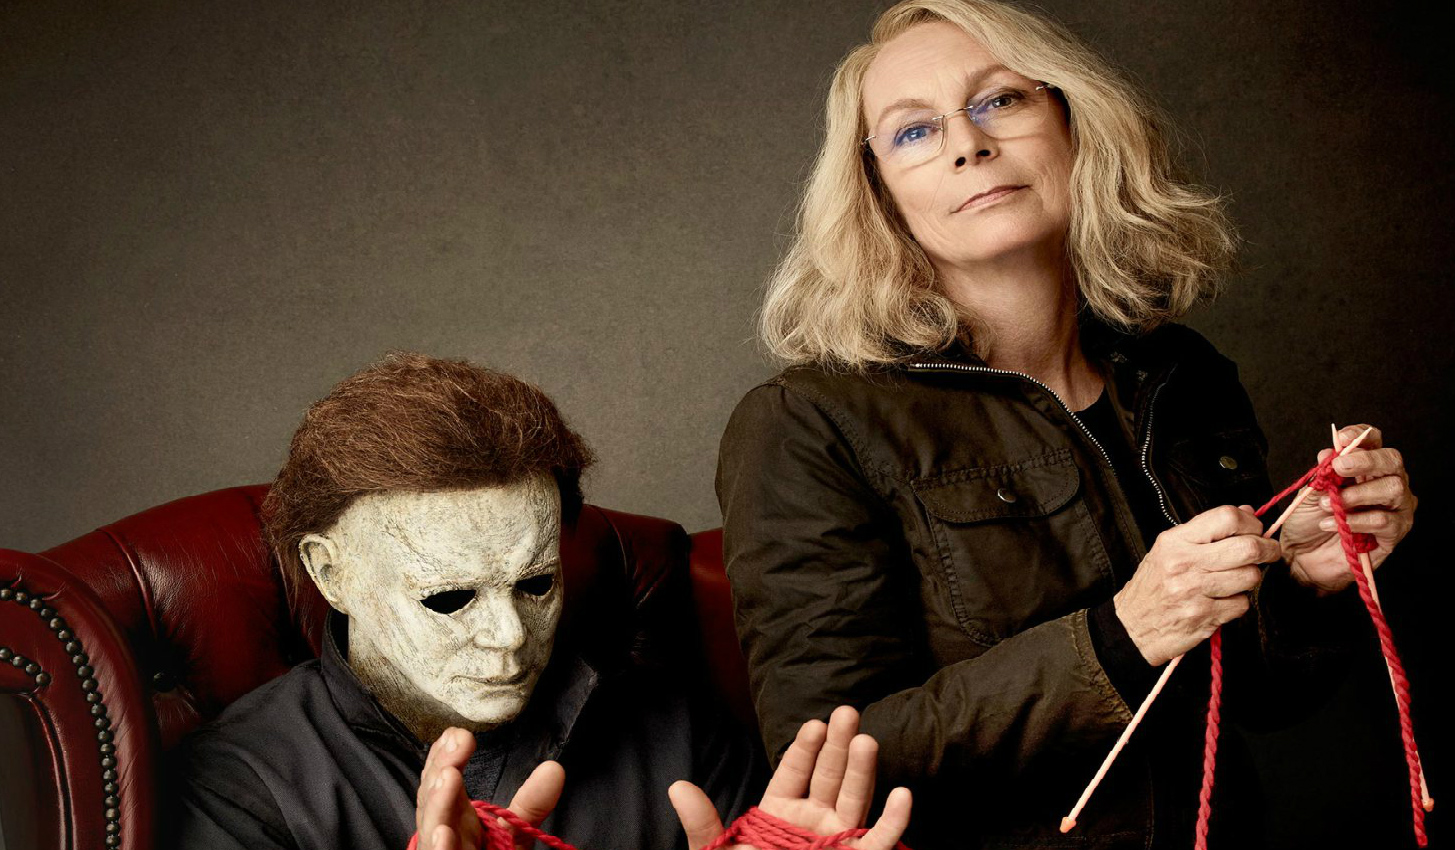 Halloween 2 2020 Sequel TV Lover: Halloween   2 sequels due for 2020 and 2021